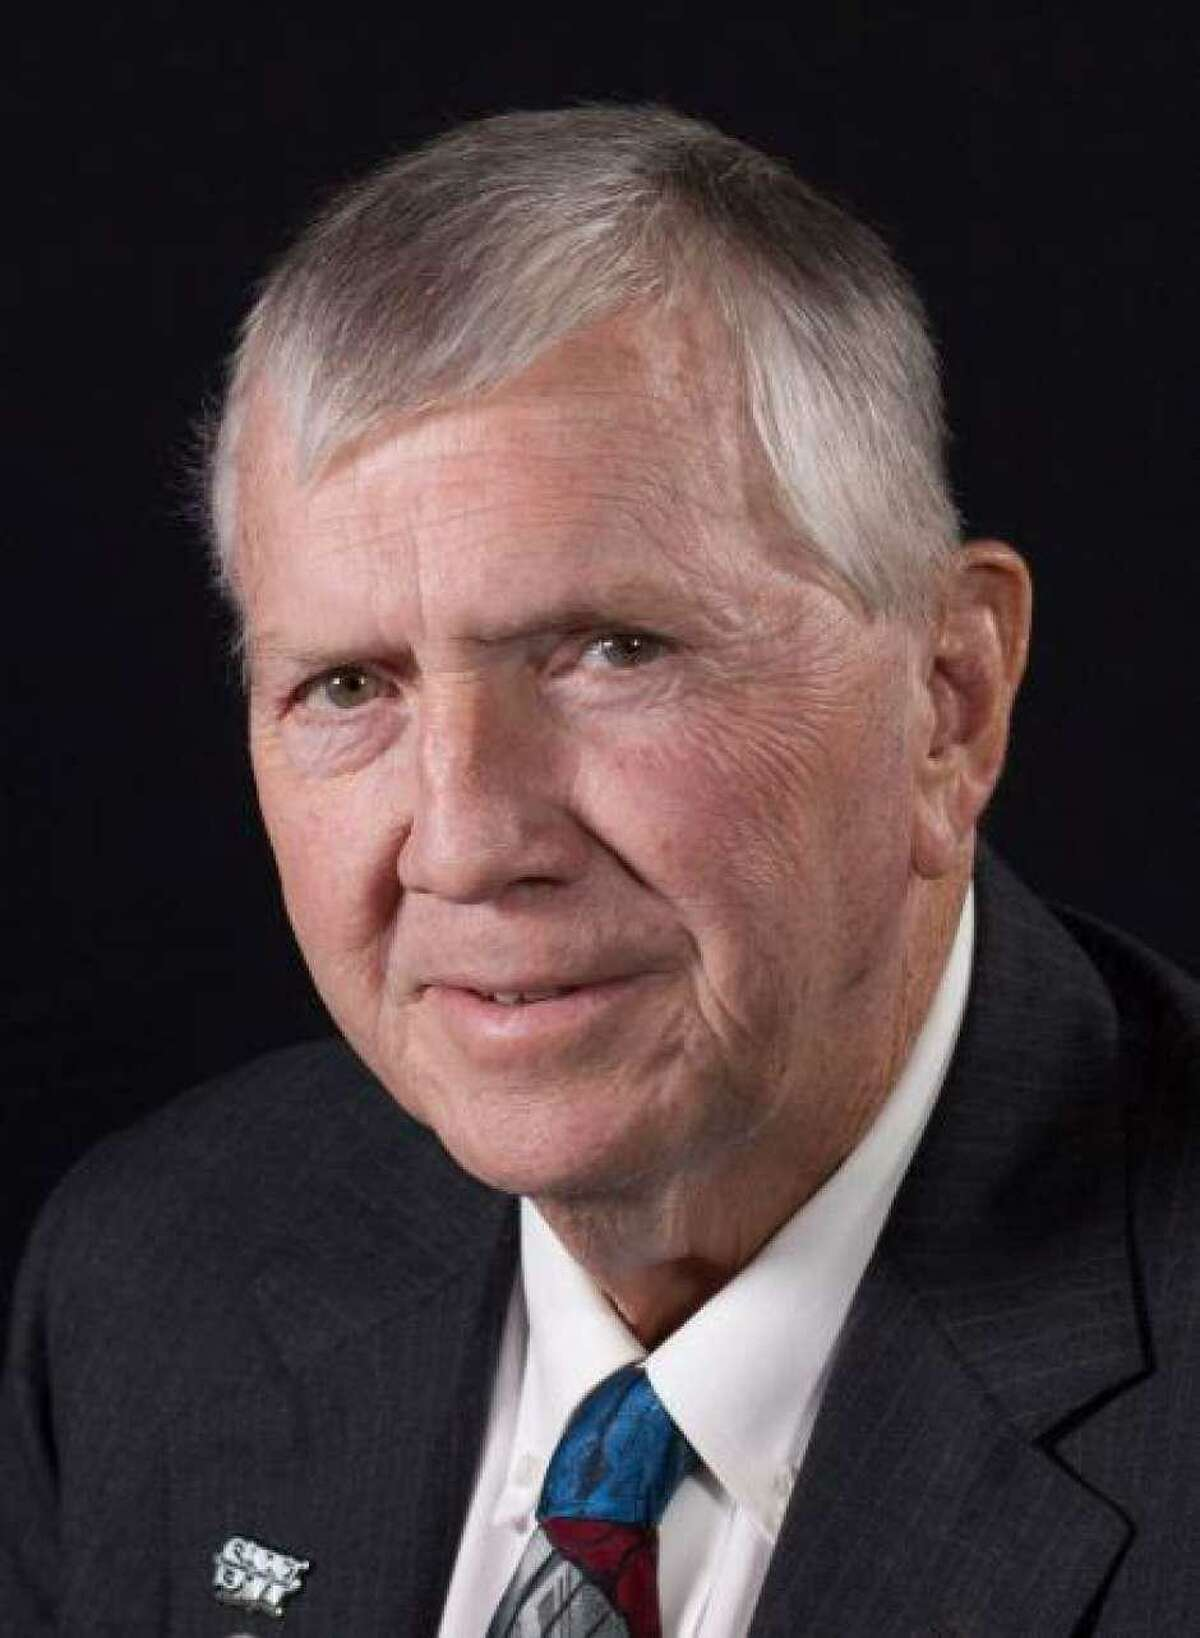 Mike Frazier is running for re-election to the Southwest ISD board of trustees.